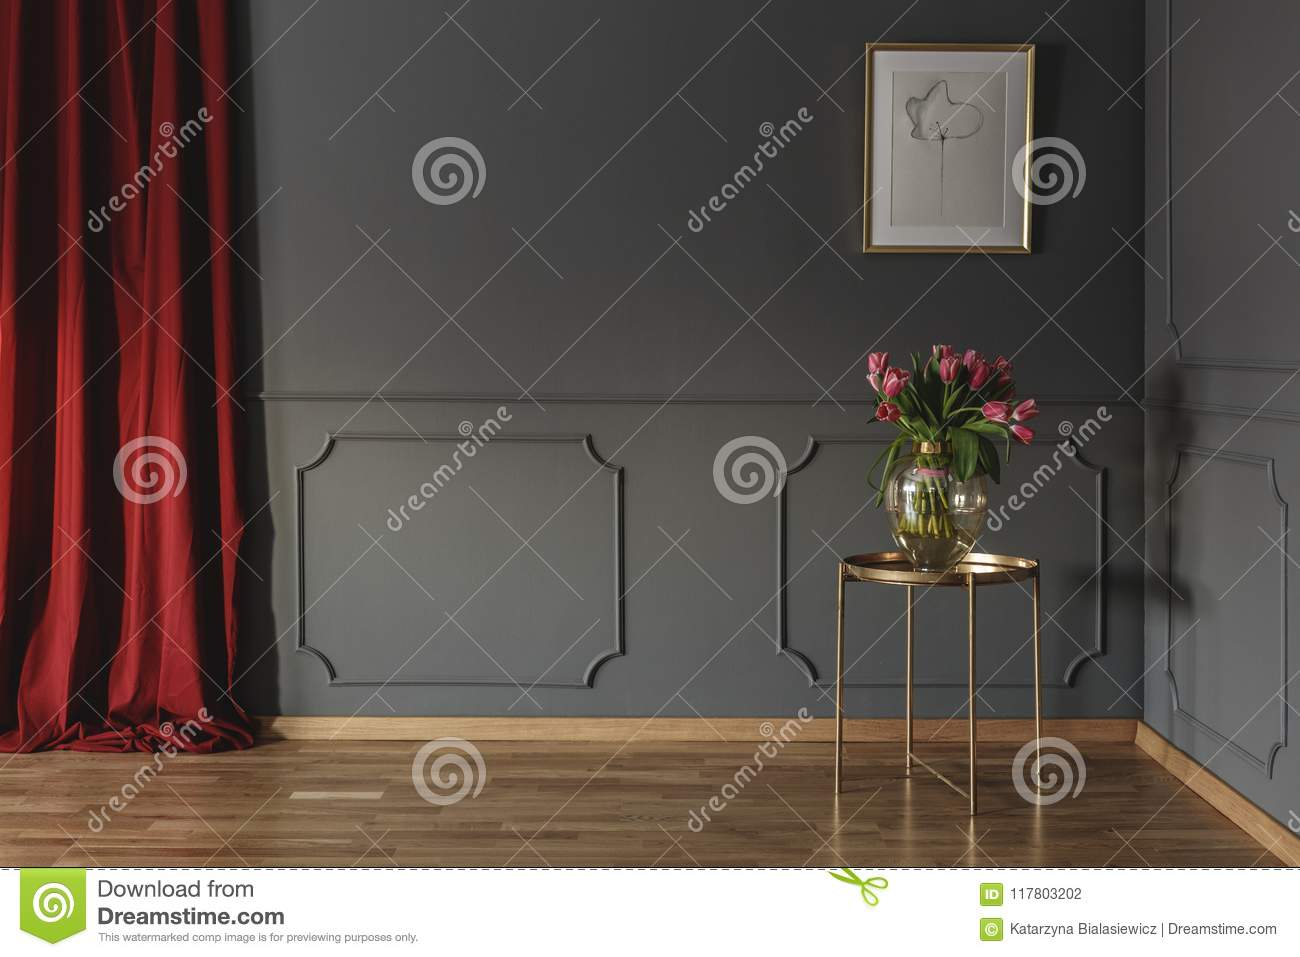 Pink tulips on a golden table in the corner of a luxurious inter